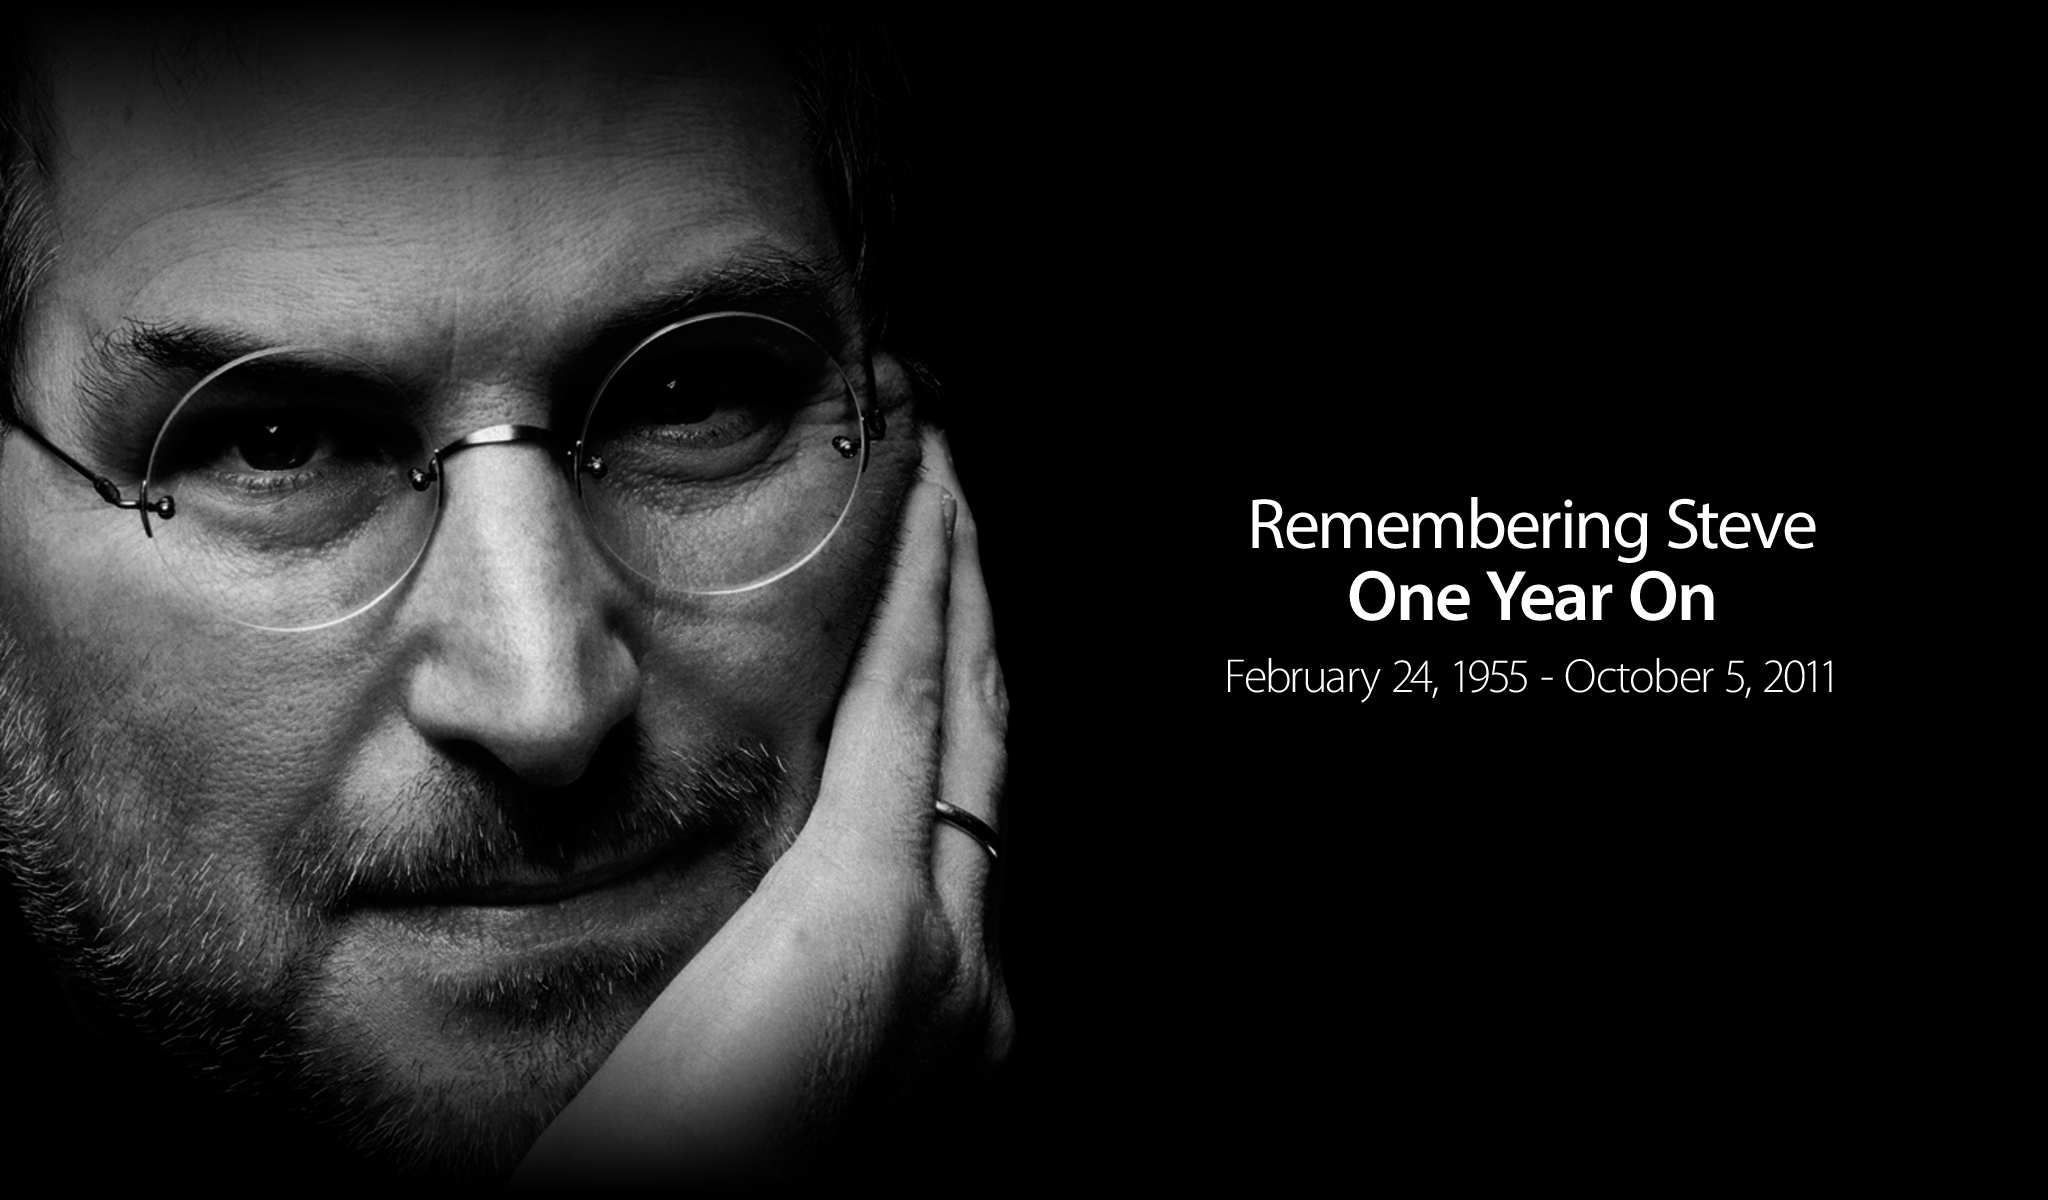 Remembering Steve: One Year On